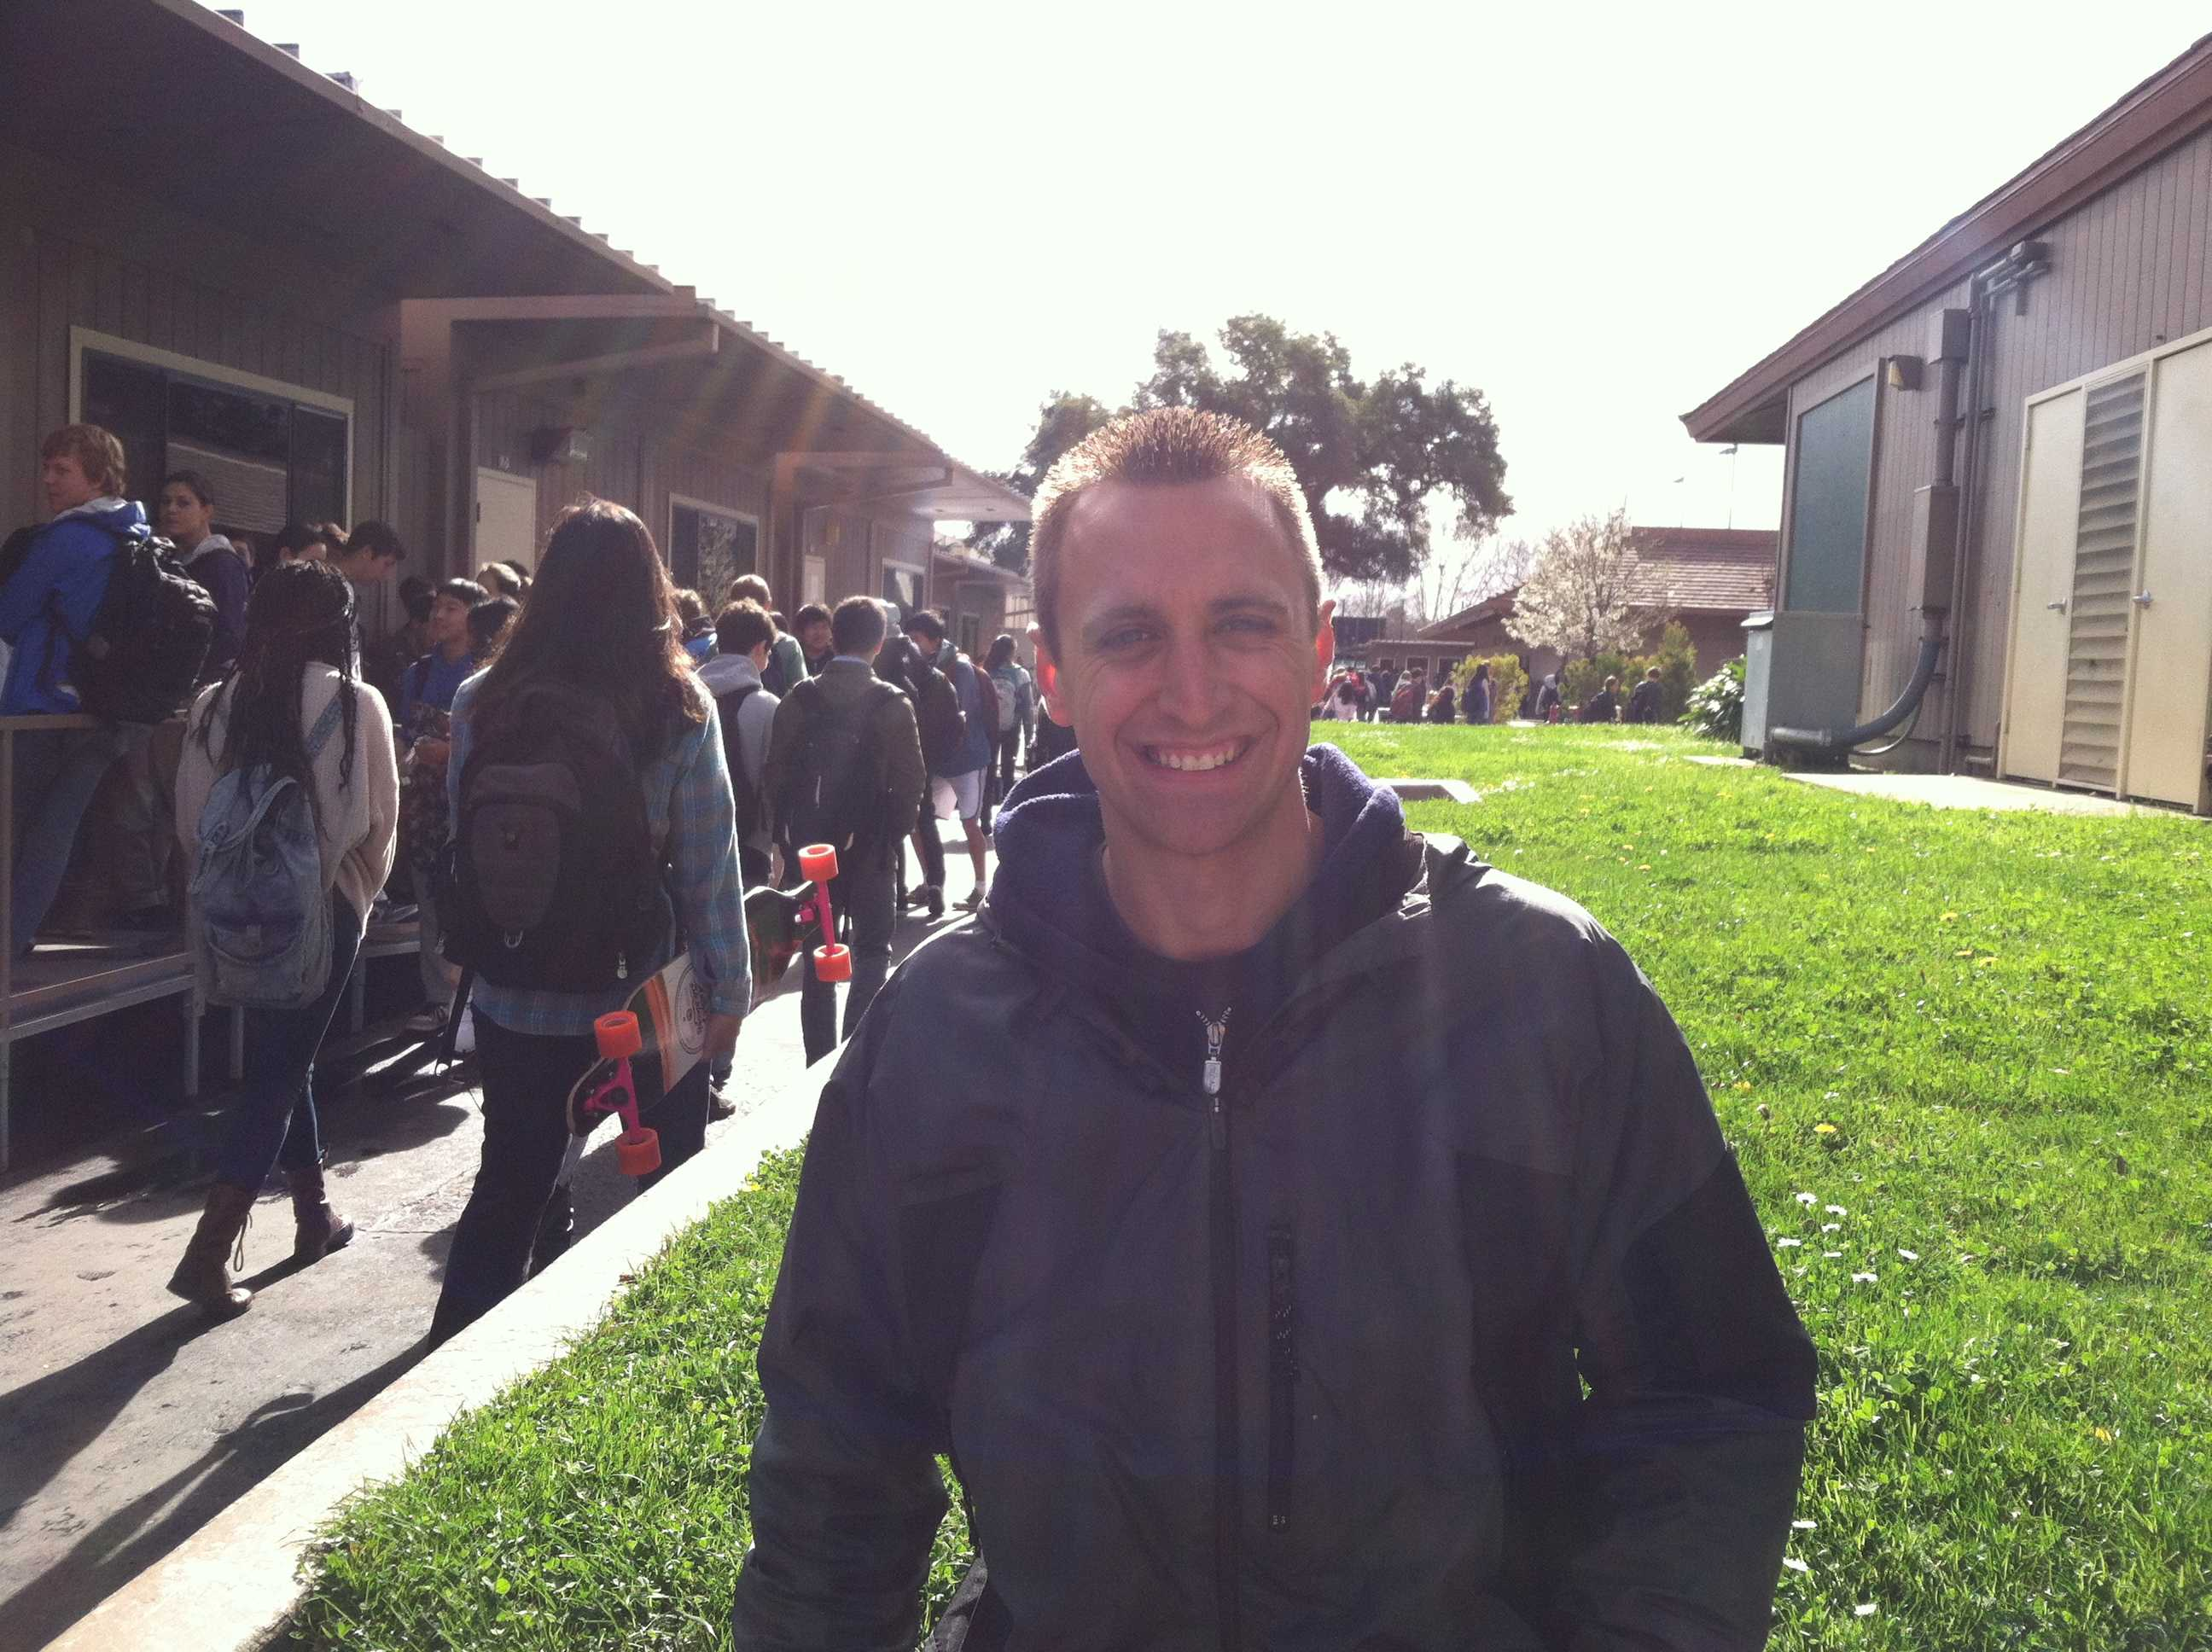 New Paly Campus Supervisor, Chase Hartmann, smiles on the job. Photo by Maddy Jones.